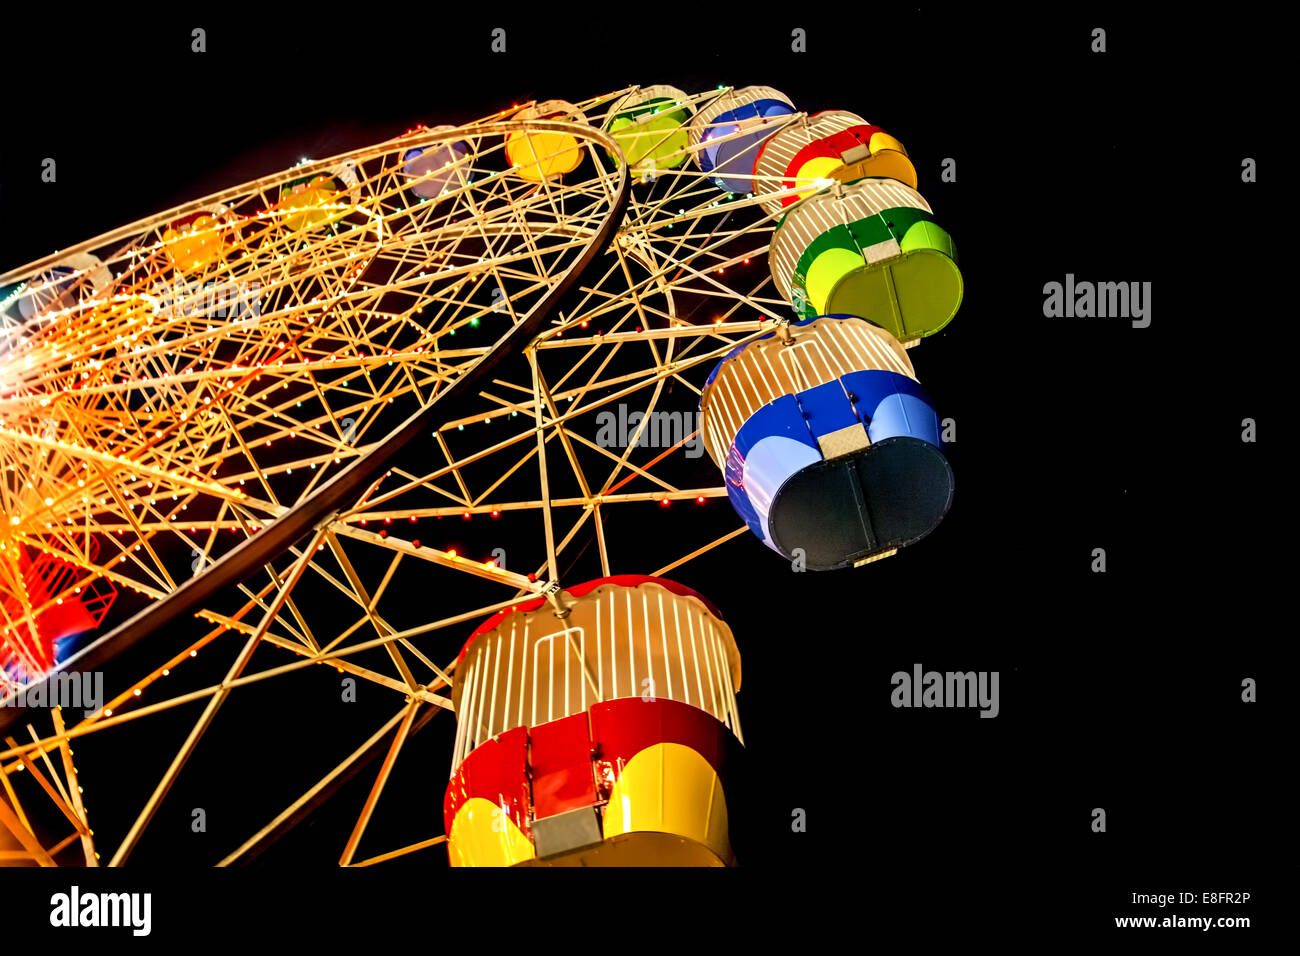 Australia, Sydney, Low angle view of Ferris Wheel At Night in Luna Park - Stock Image